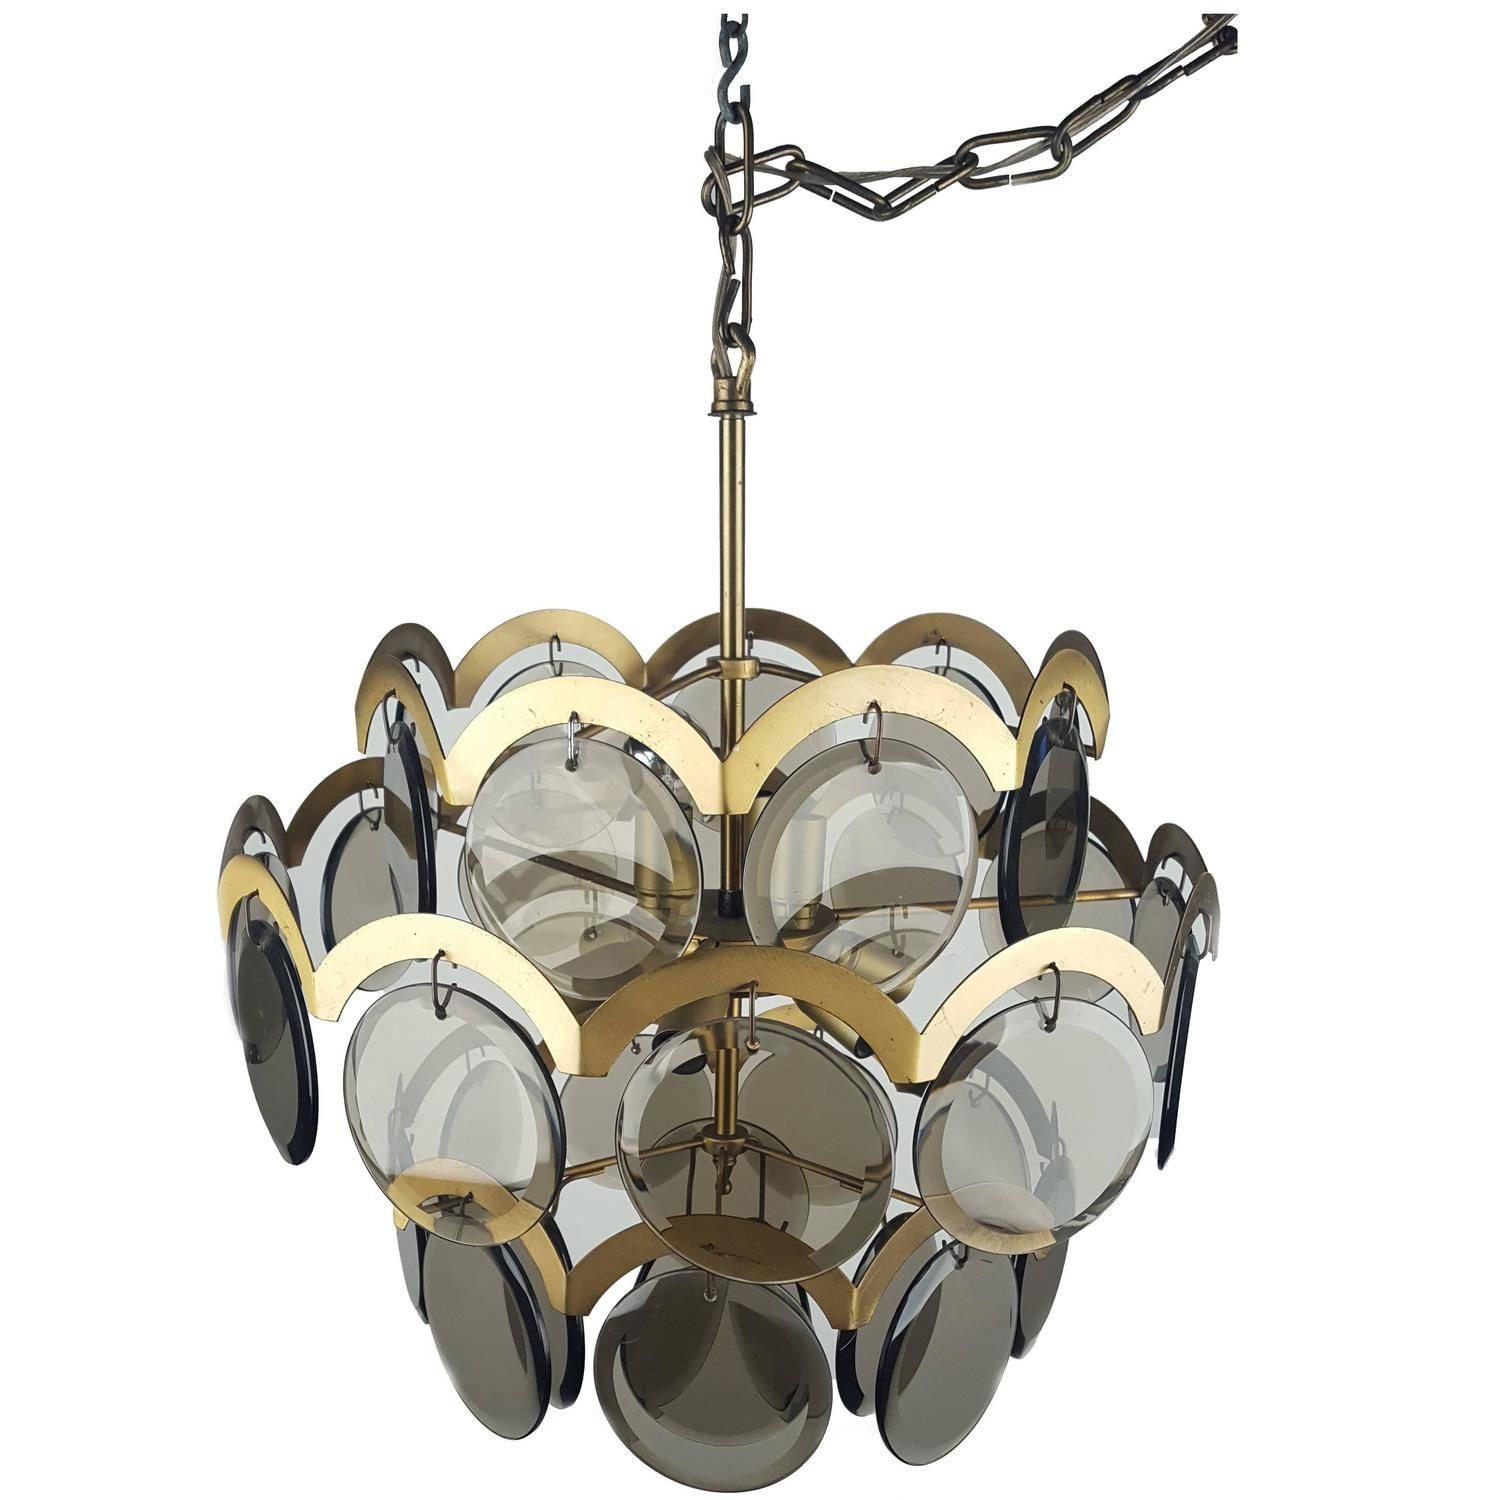 Gino vistosi italian mid century modern smoked glass chandelier gino vistosi italian mid century modern smoked glass chandelier from a unique collection of antique and modern chandeliers and pendants at aloadofball Images